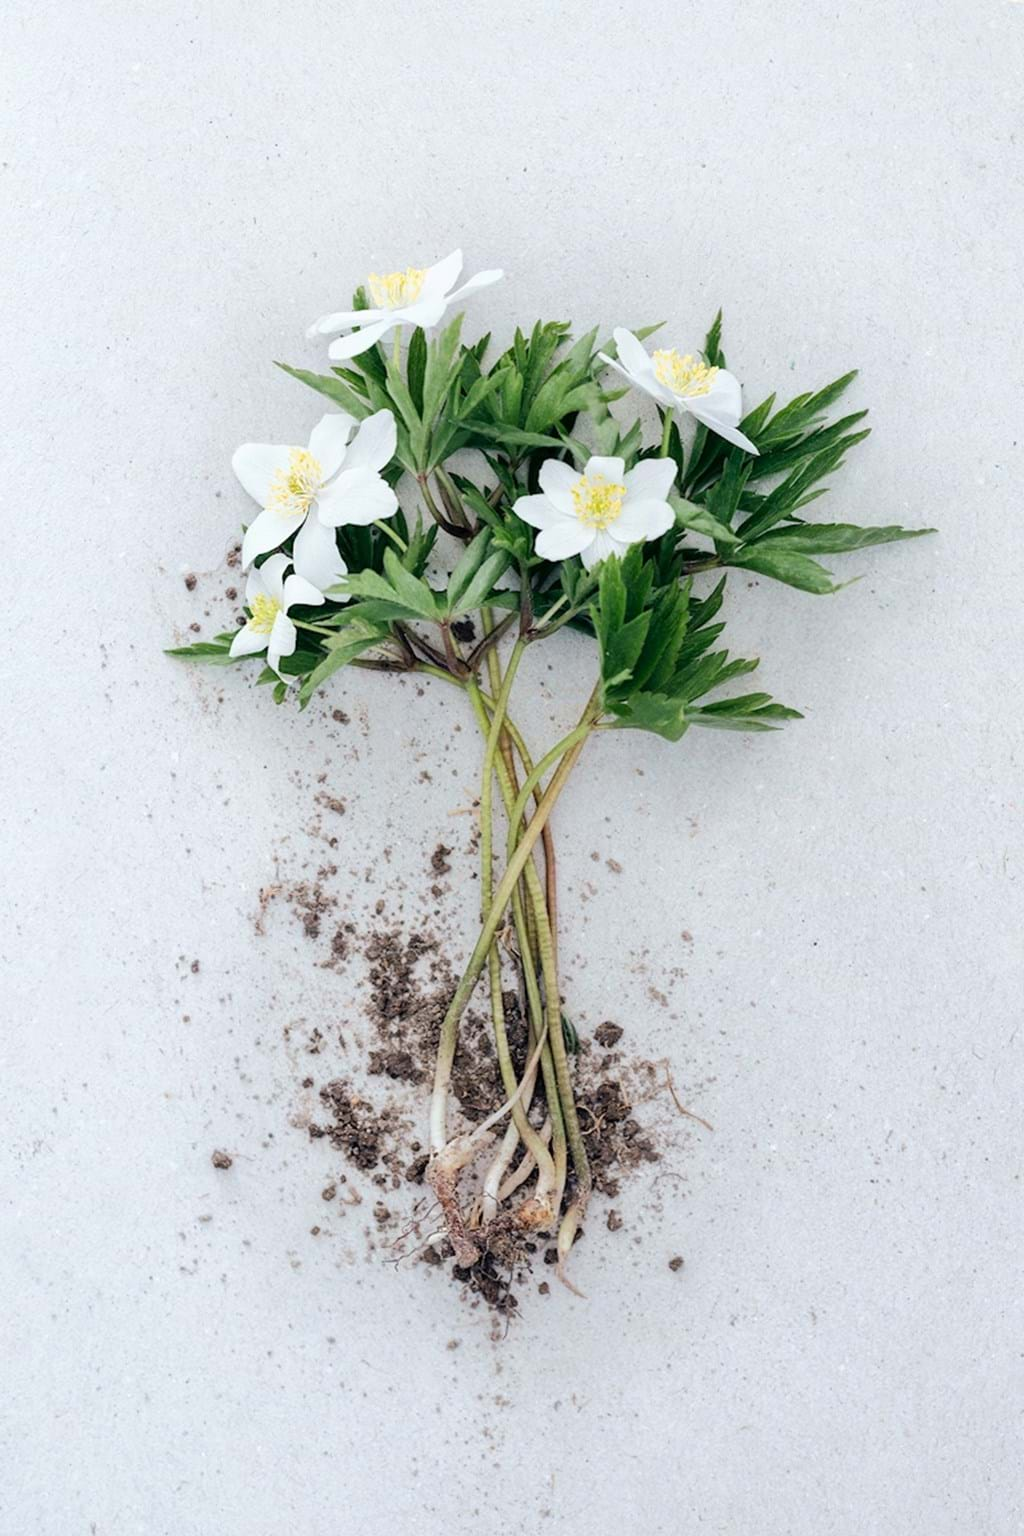 Poster: Wood Anemones - In centuries we've been decorating our homes with flowers and plants. Livin...